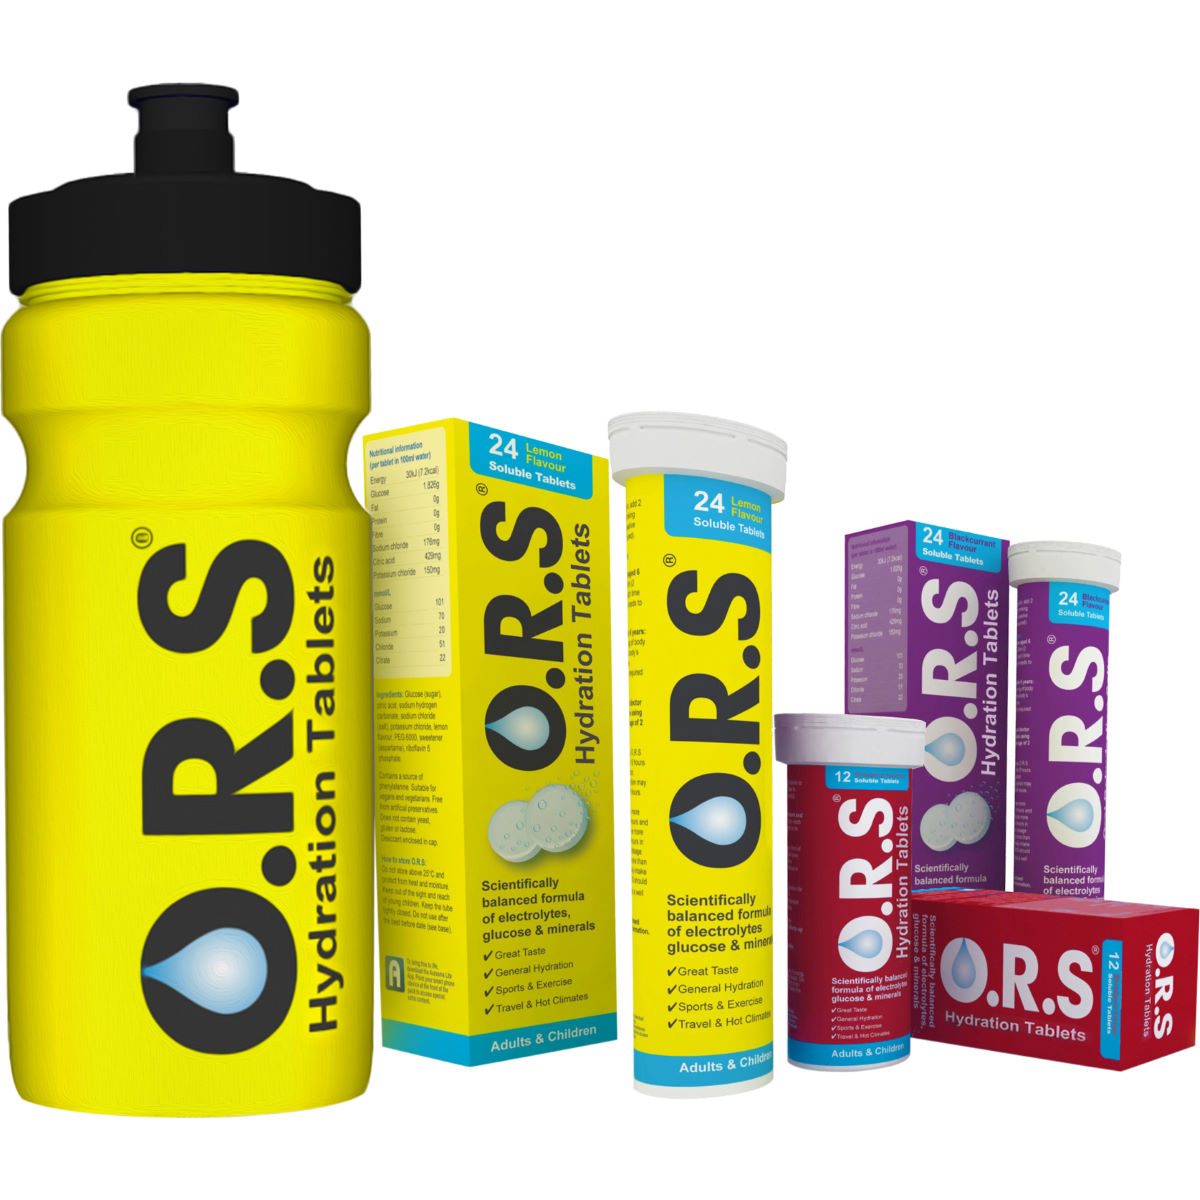 O.R.S Hydration Tablets (Wiggle Exclusive Offer Pack)